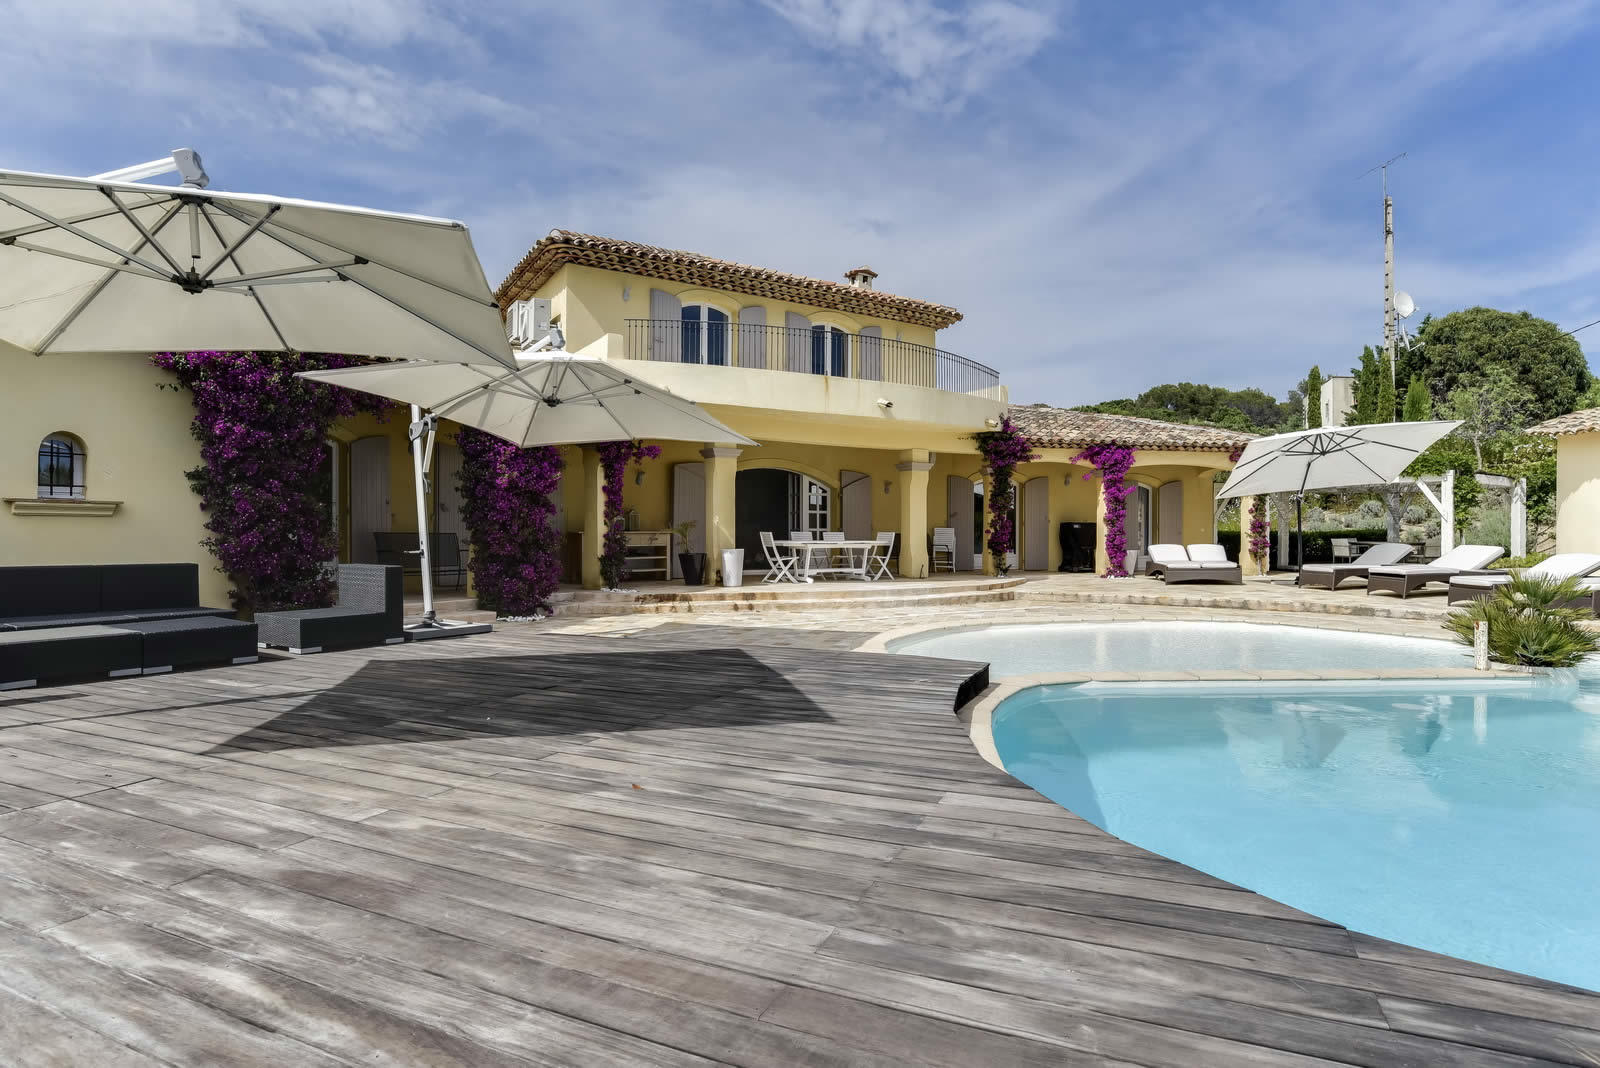 provencal villa for rent in ramatuelle saint tropez near the beaches 6 bedrooms and swimming. Black Bedroom Furniture Sets. Home Design Ideas